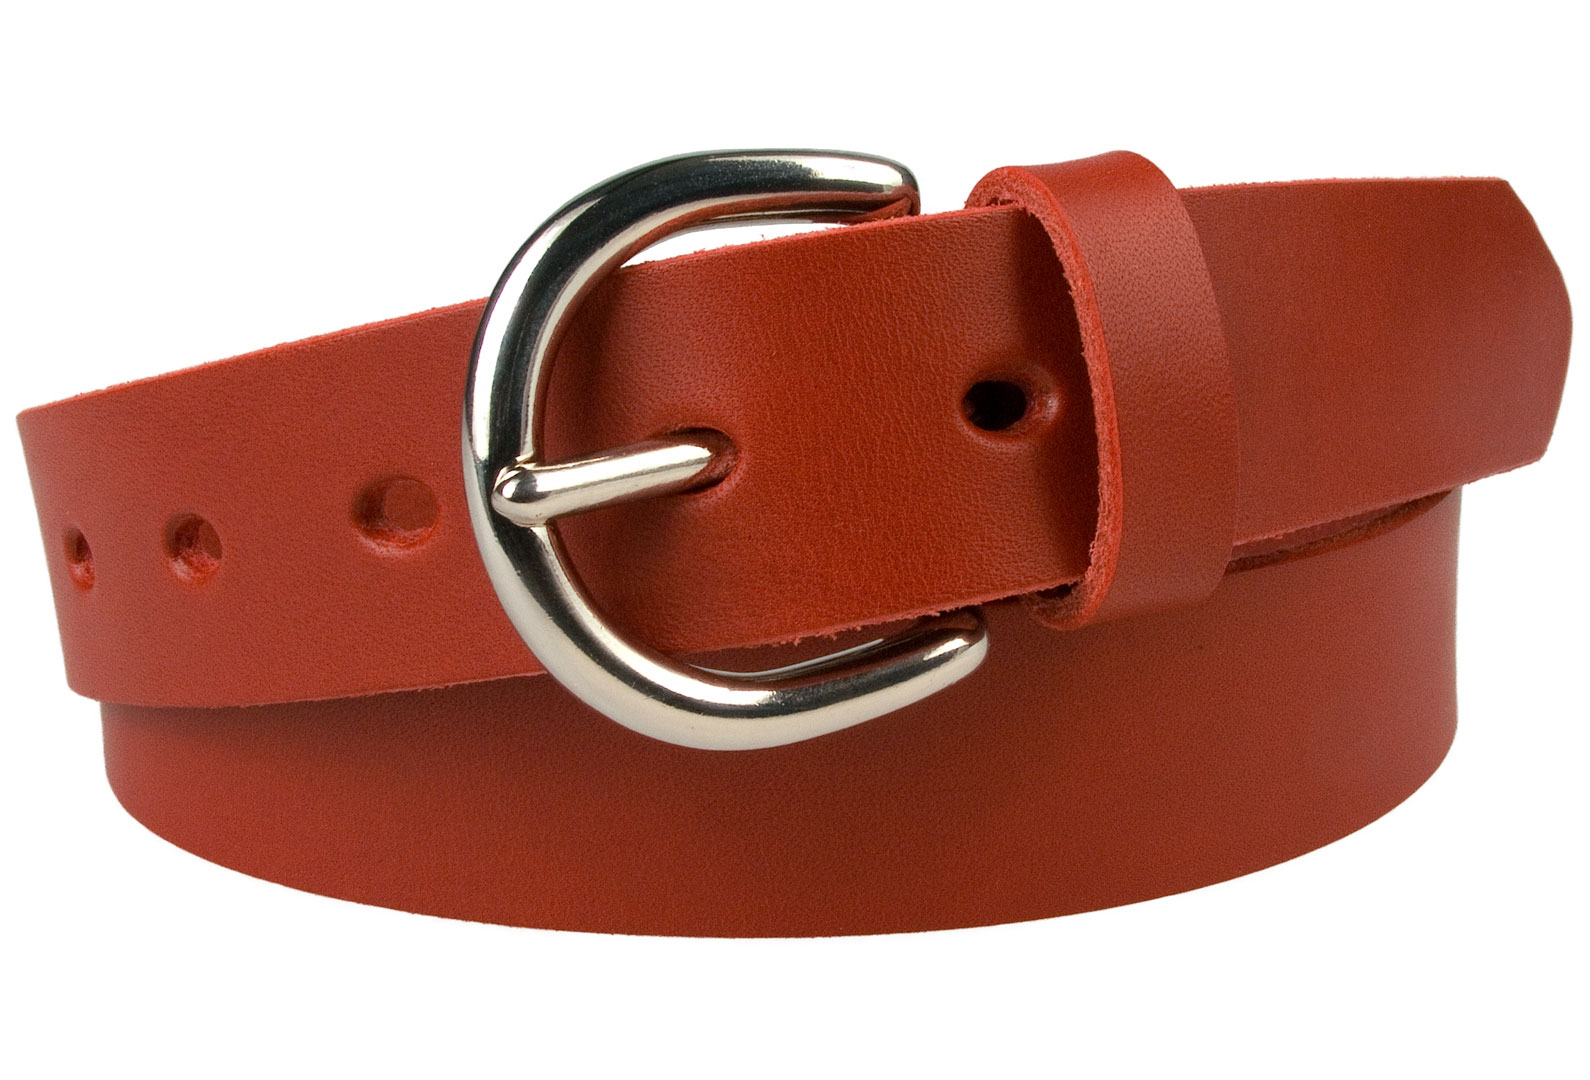 Made In UK Leather Belt 3cm Wide Full Grain Vegetable Tanned Leather